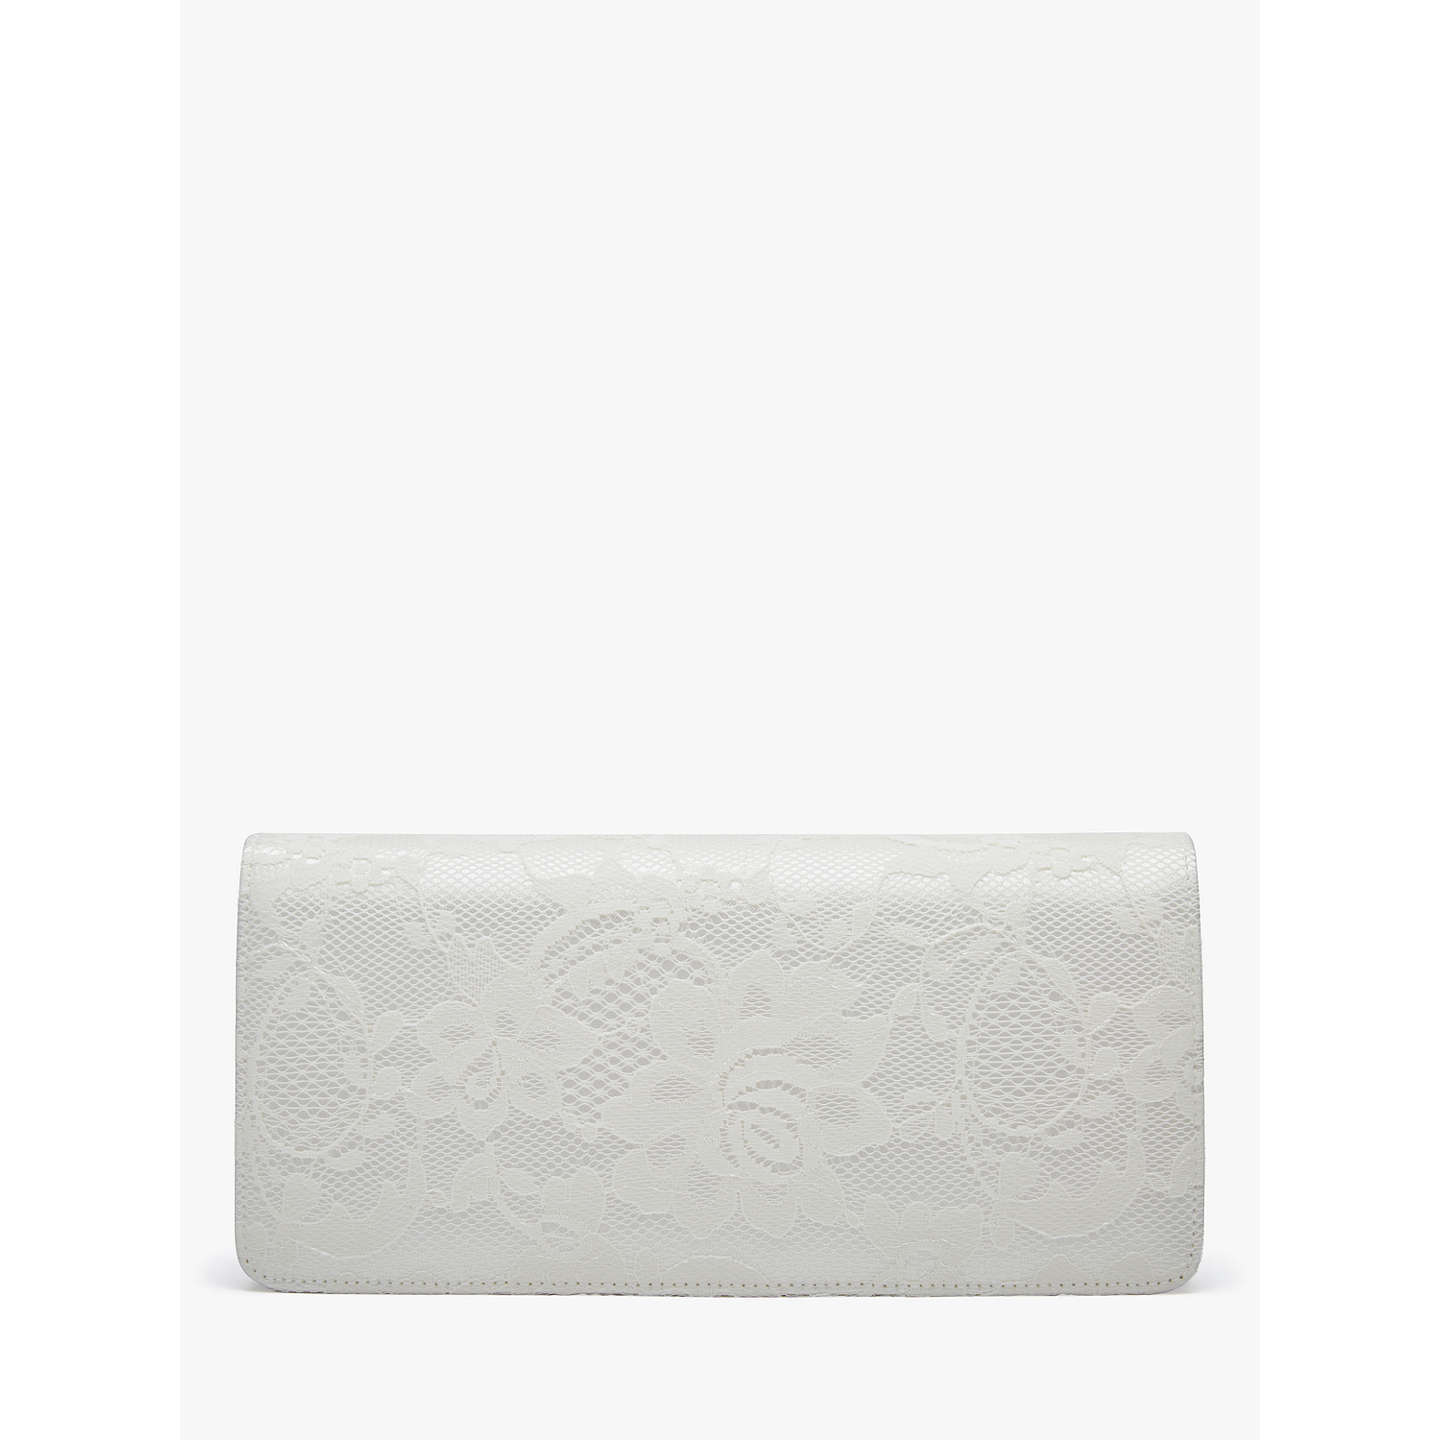 BuyRainbow Club Tilly Satin Clutch Bag, Ivory Online at johnlewis.com